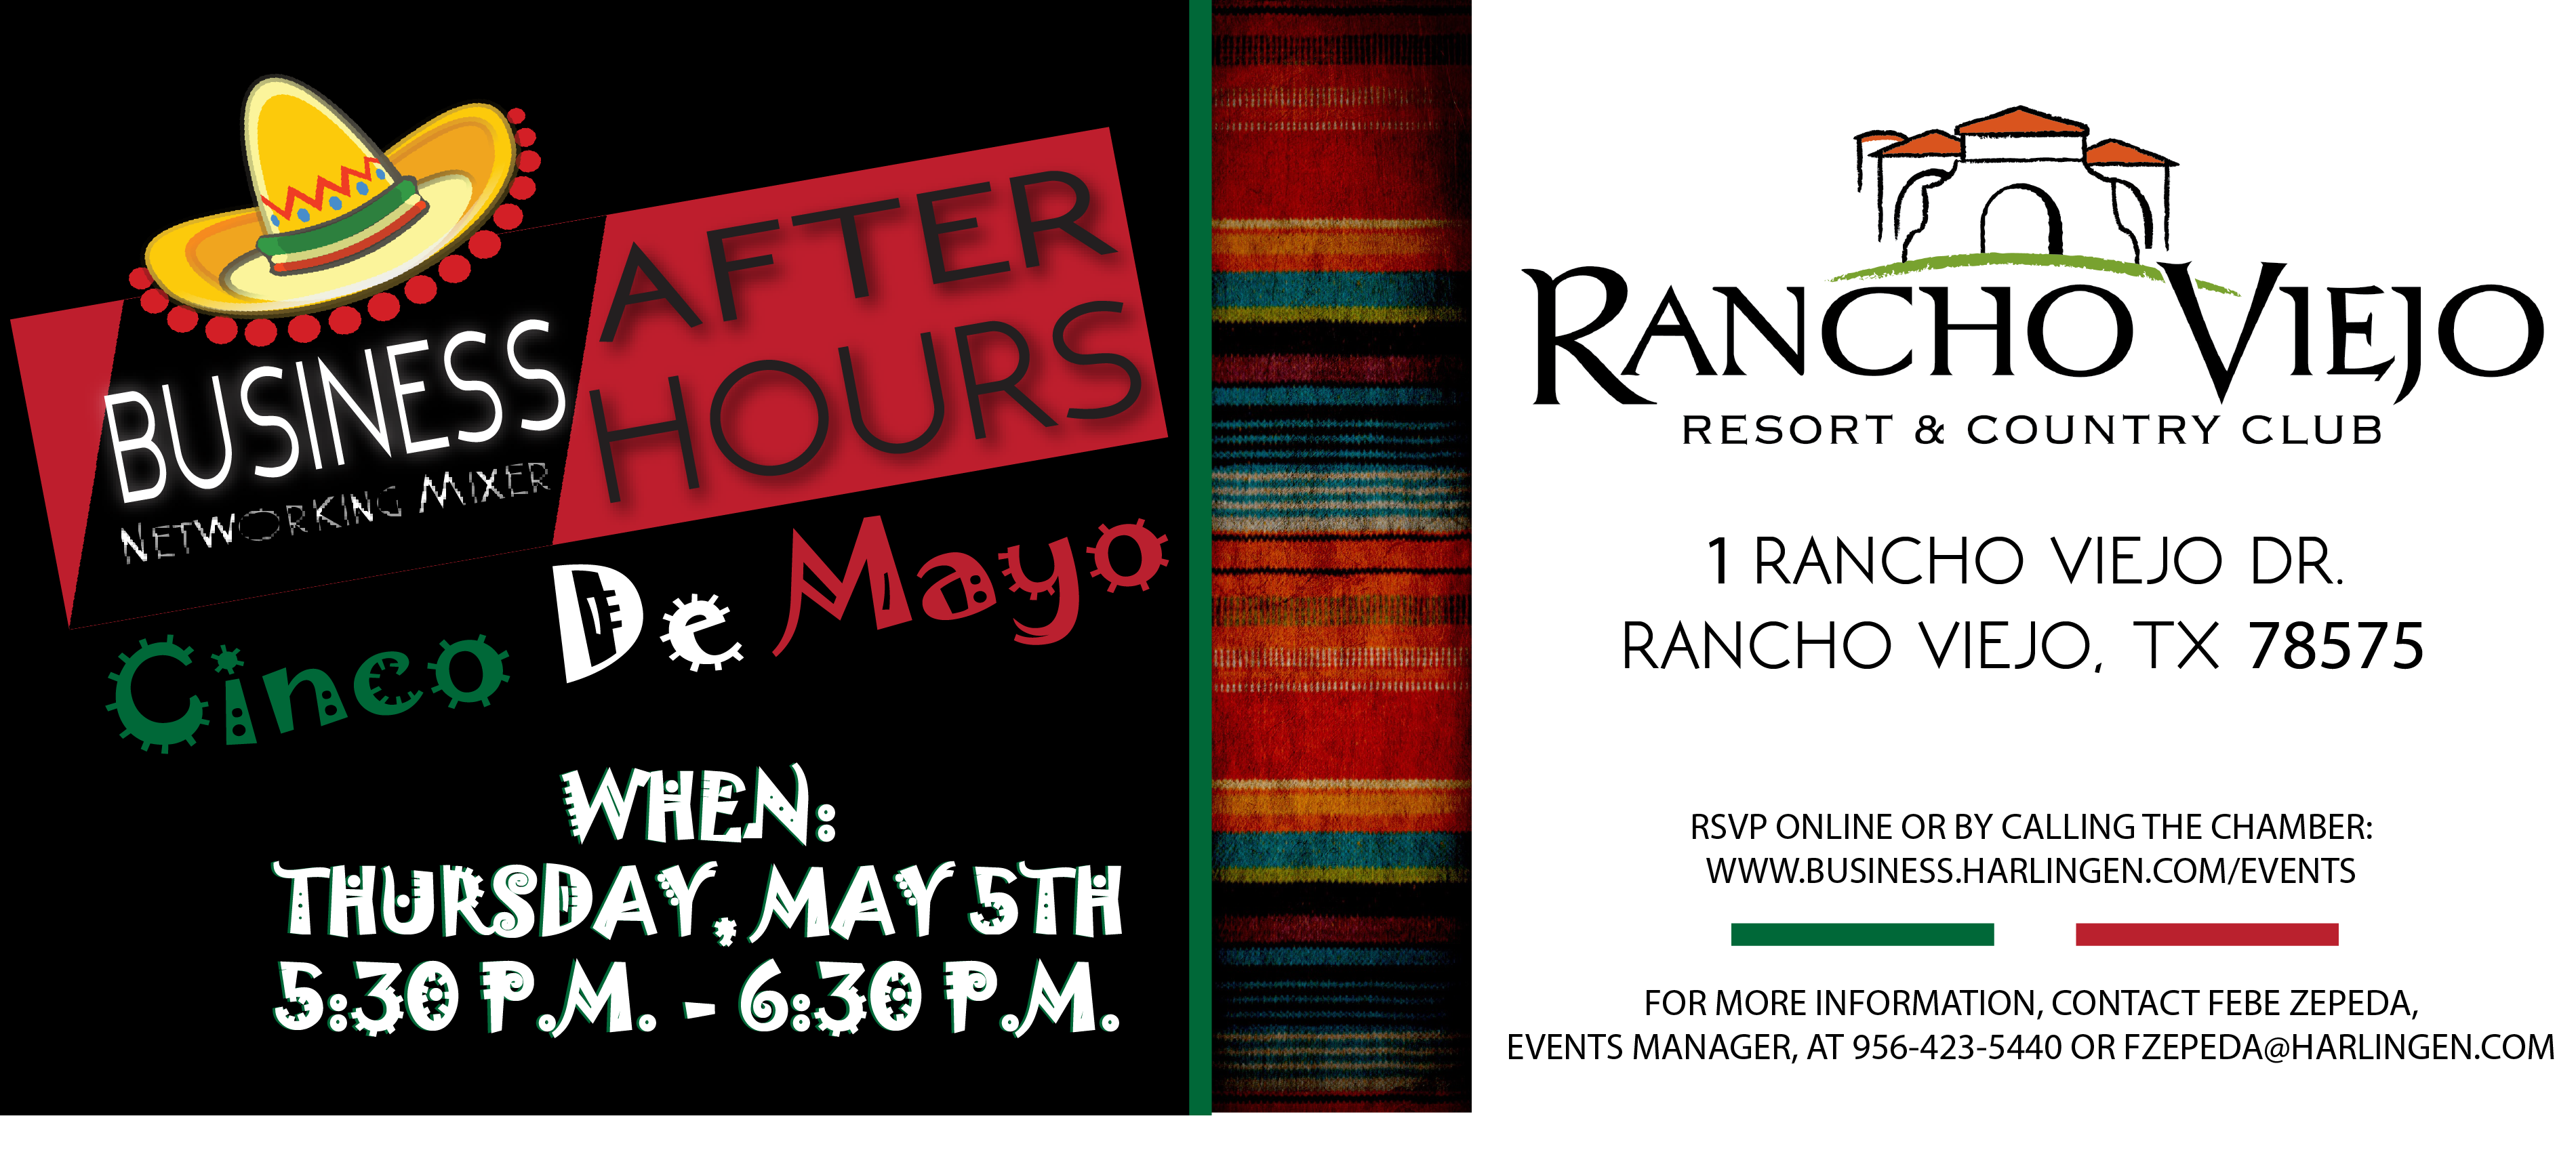 Youth Business Mixer ~ Business after hours mixer at rancho viejo resort